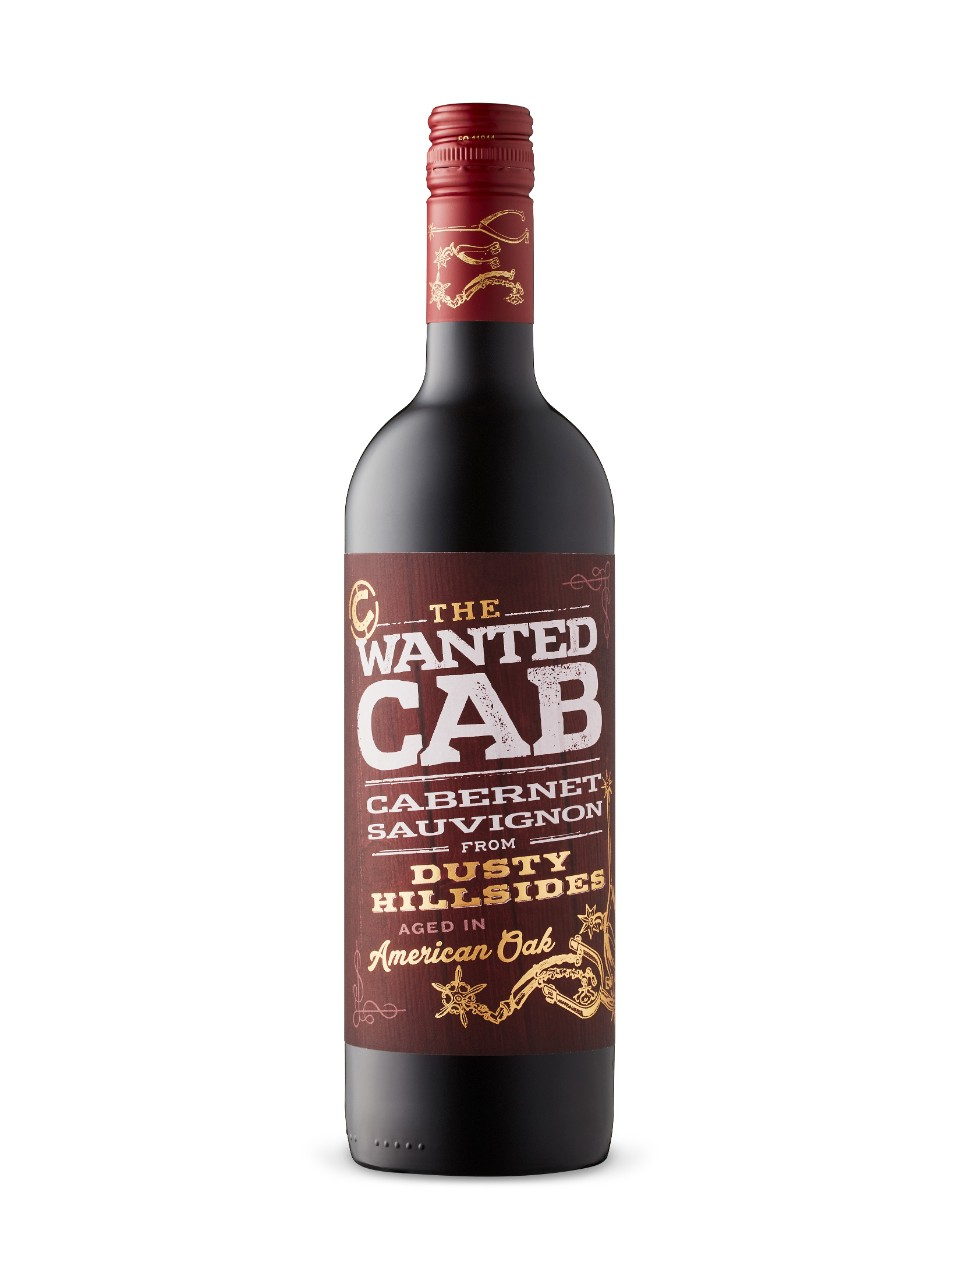 The Wanted Cab Cabernet Sauvignon, Vd'Italia from LCBO